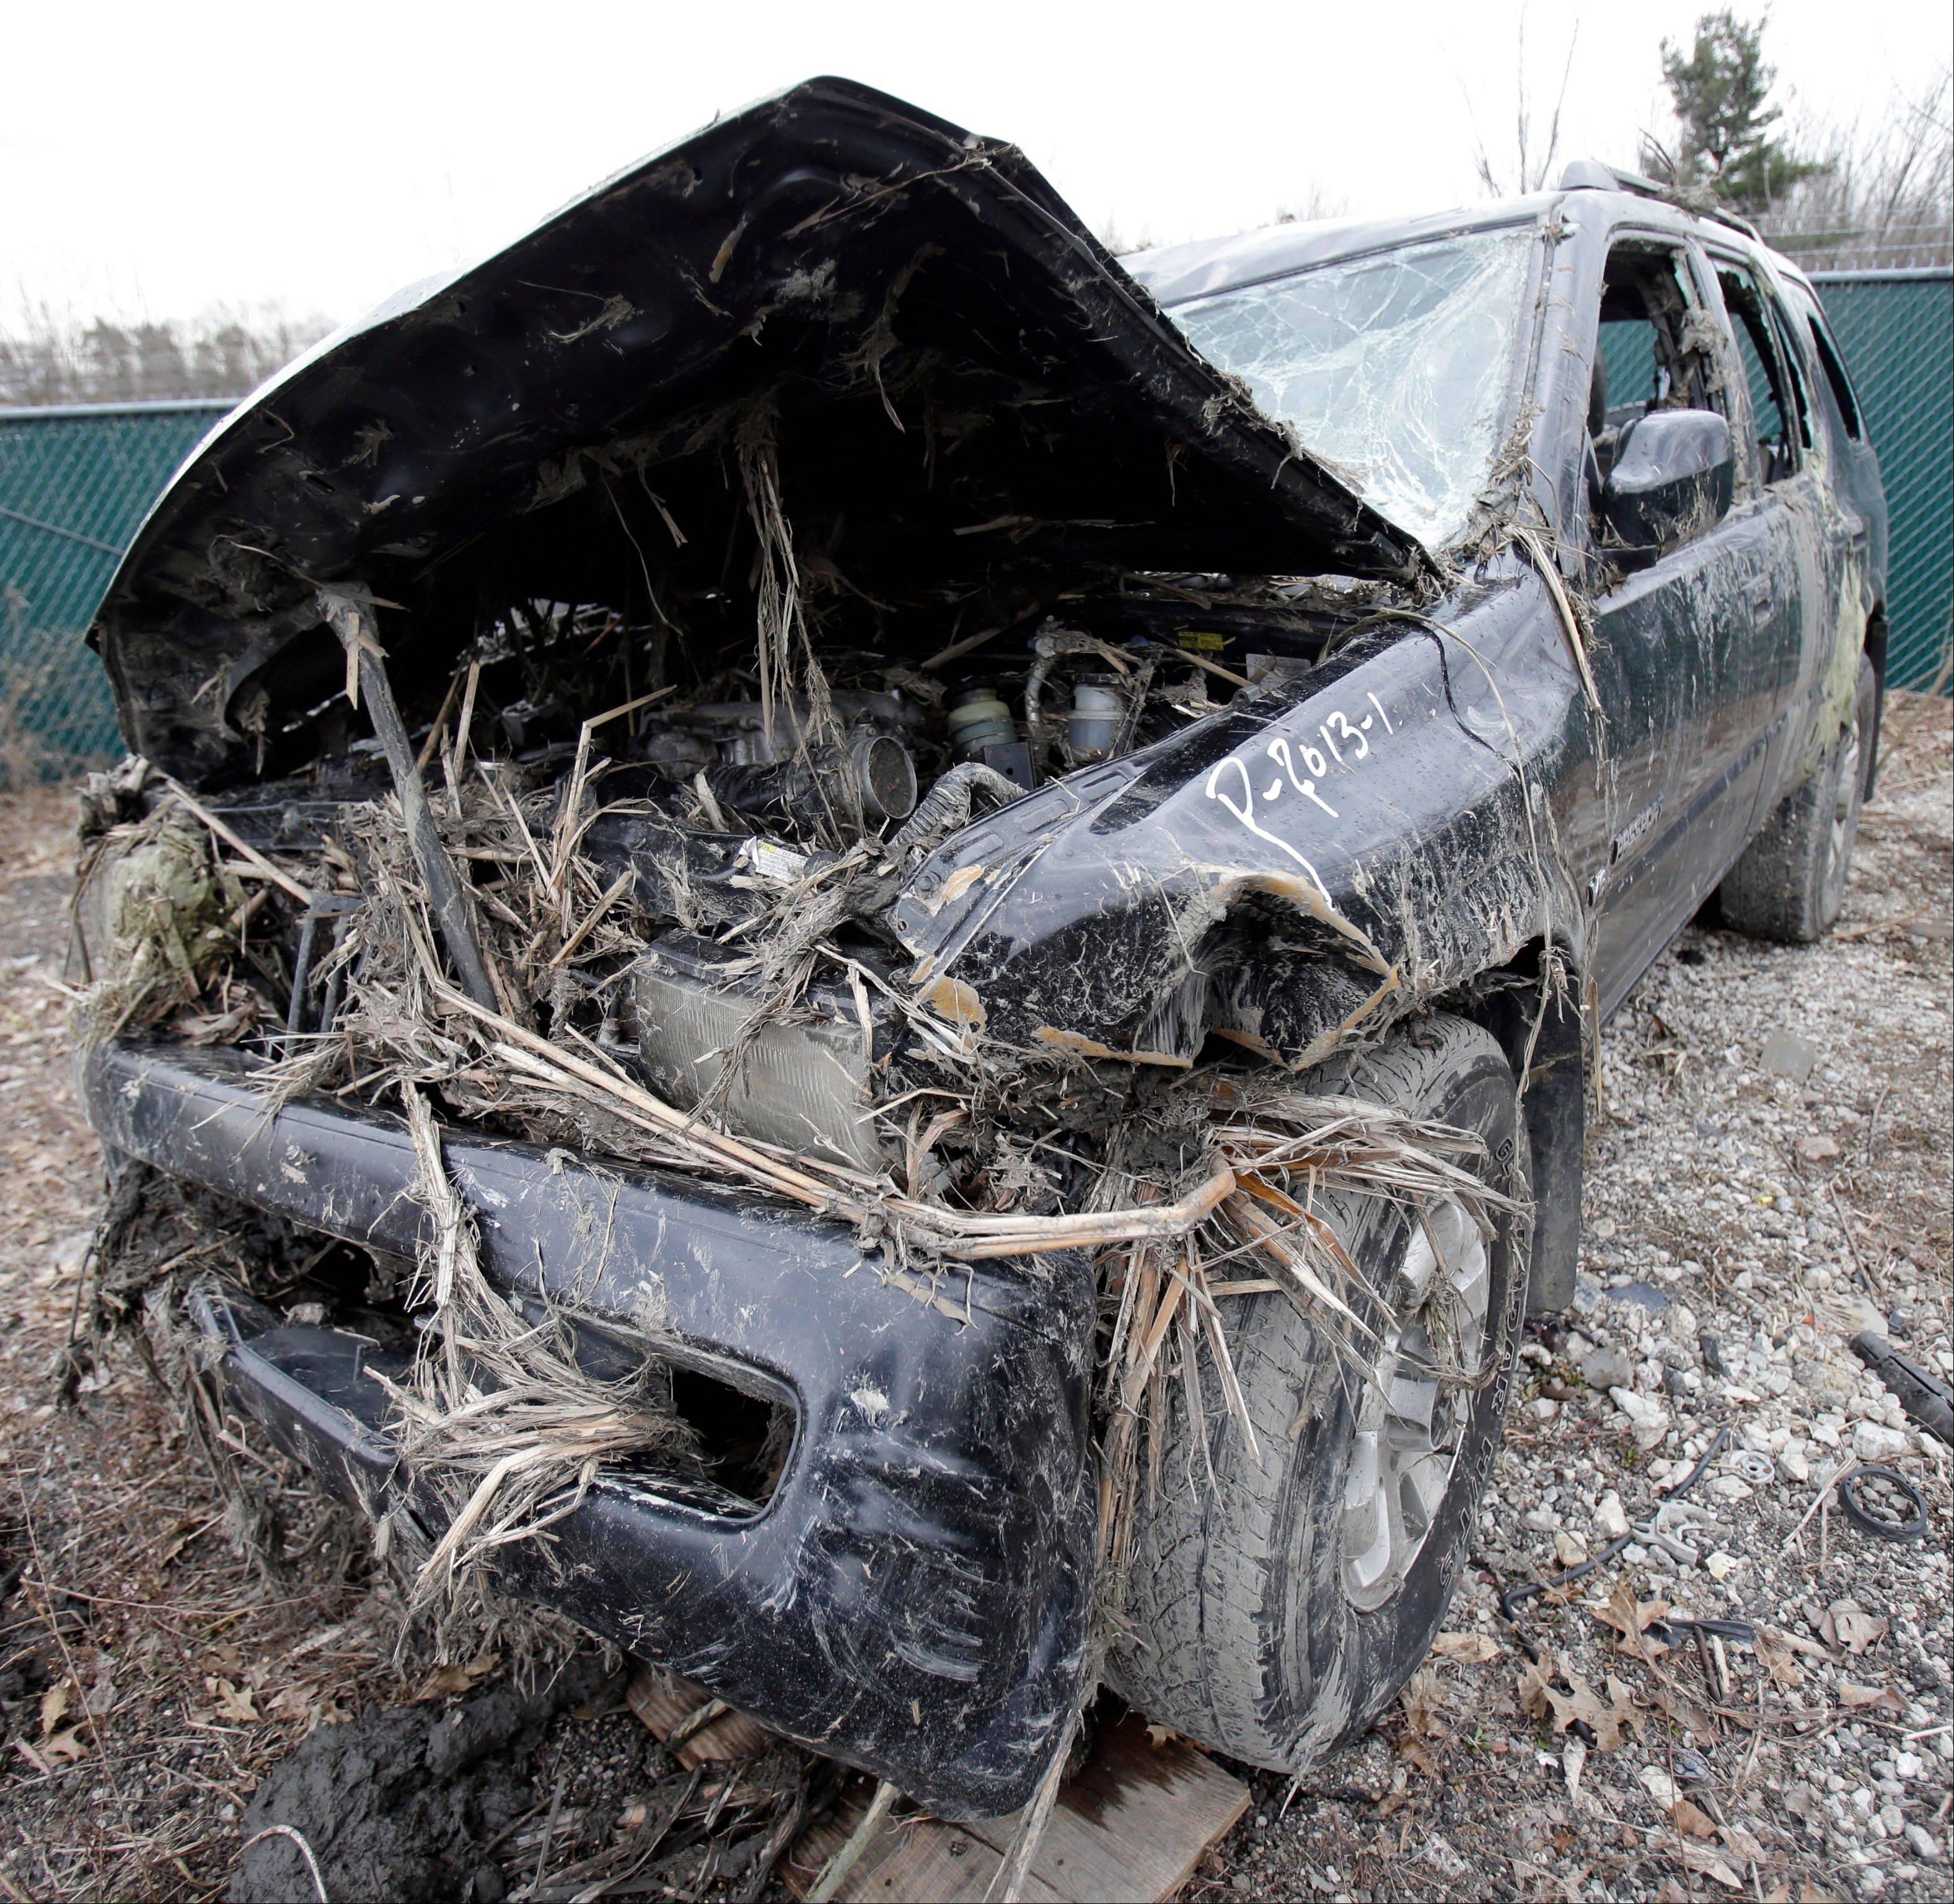 This Monday, March 11, 2013 photo in Southington, Ohio shows the vehicle where six people died in a crash early Sunday in Warren, Ohio. Two teens who escaped the crash that killed six friends in a swampy pond wriggled out of the wreckage by smashing a rear window and swimming away from the SUV, a state trooper said Monday.